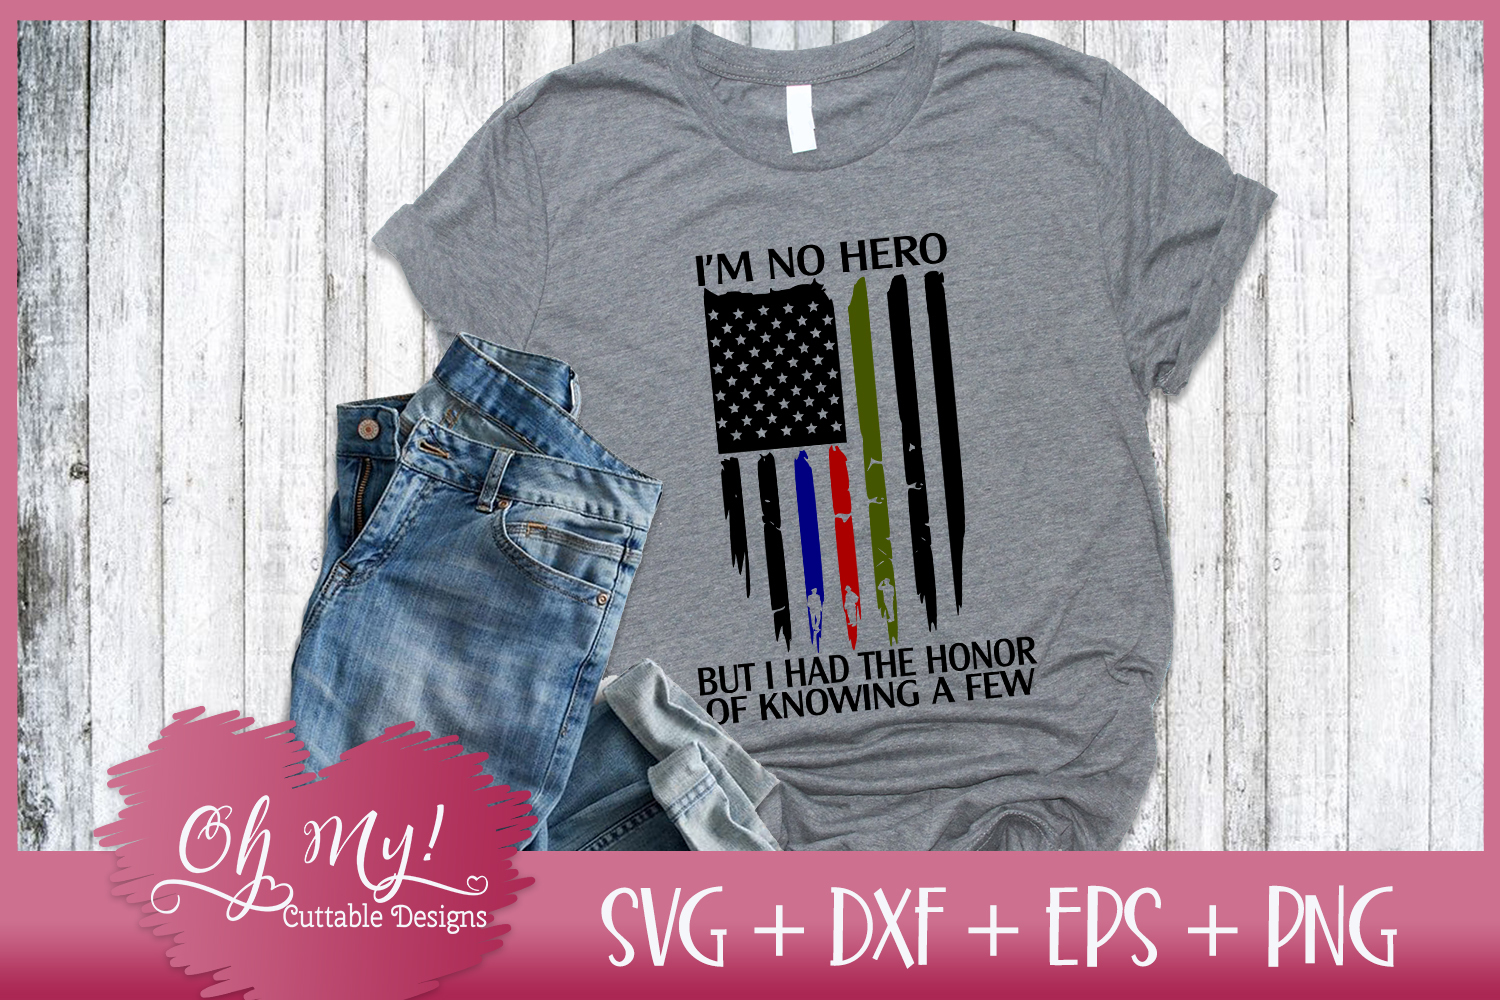 Distresses Flag - I'm No Hero - SVG DXF EPS PNG Cutting File example image 3